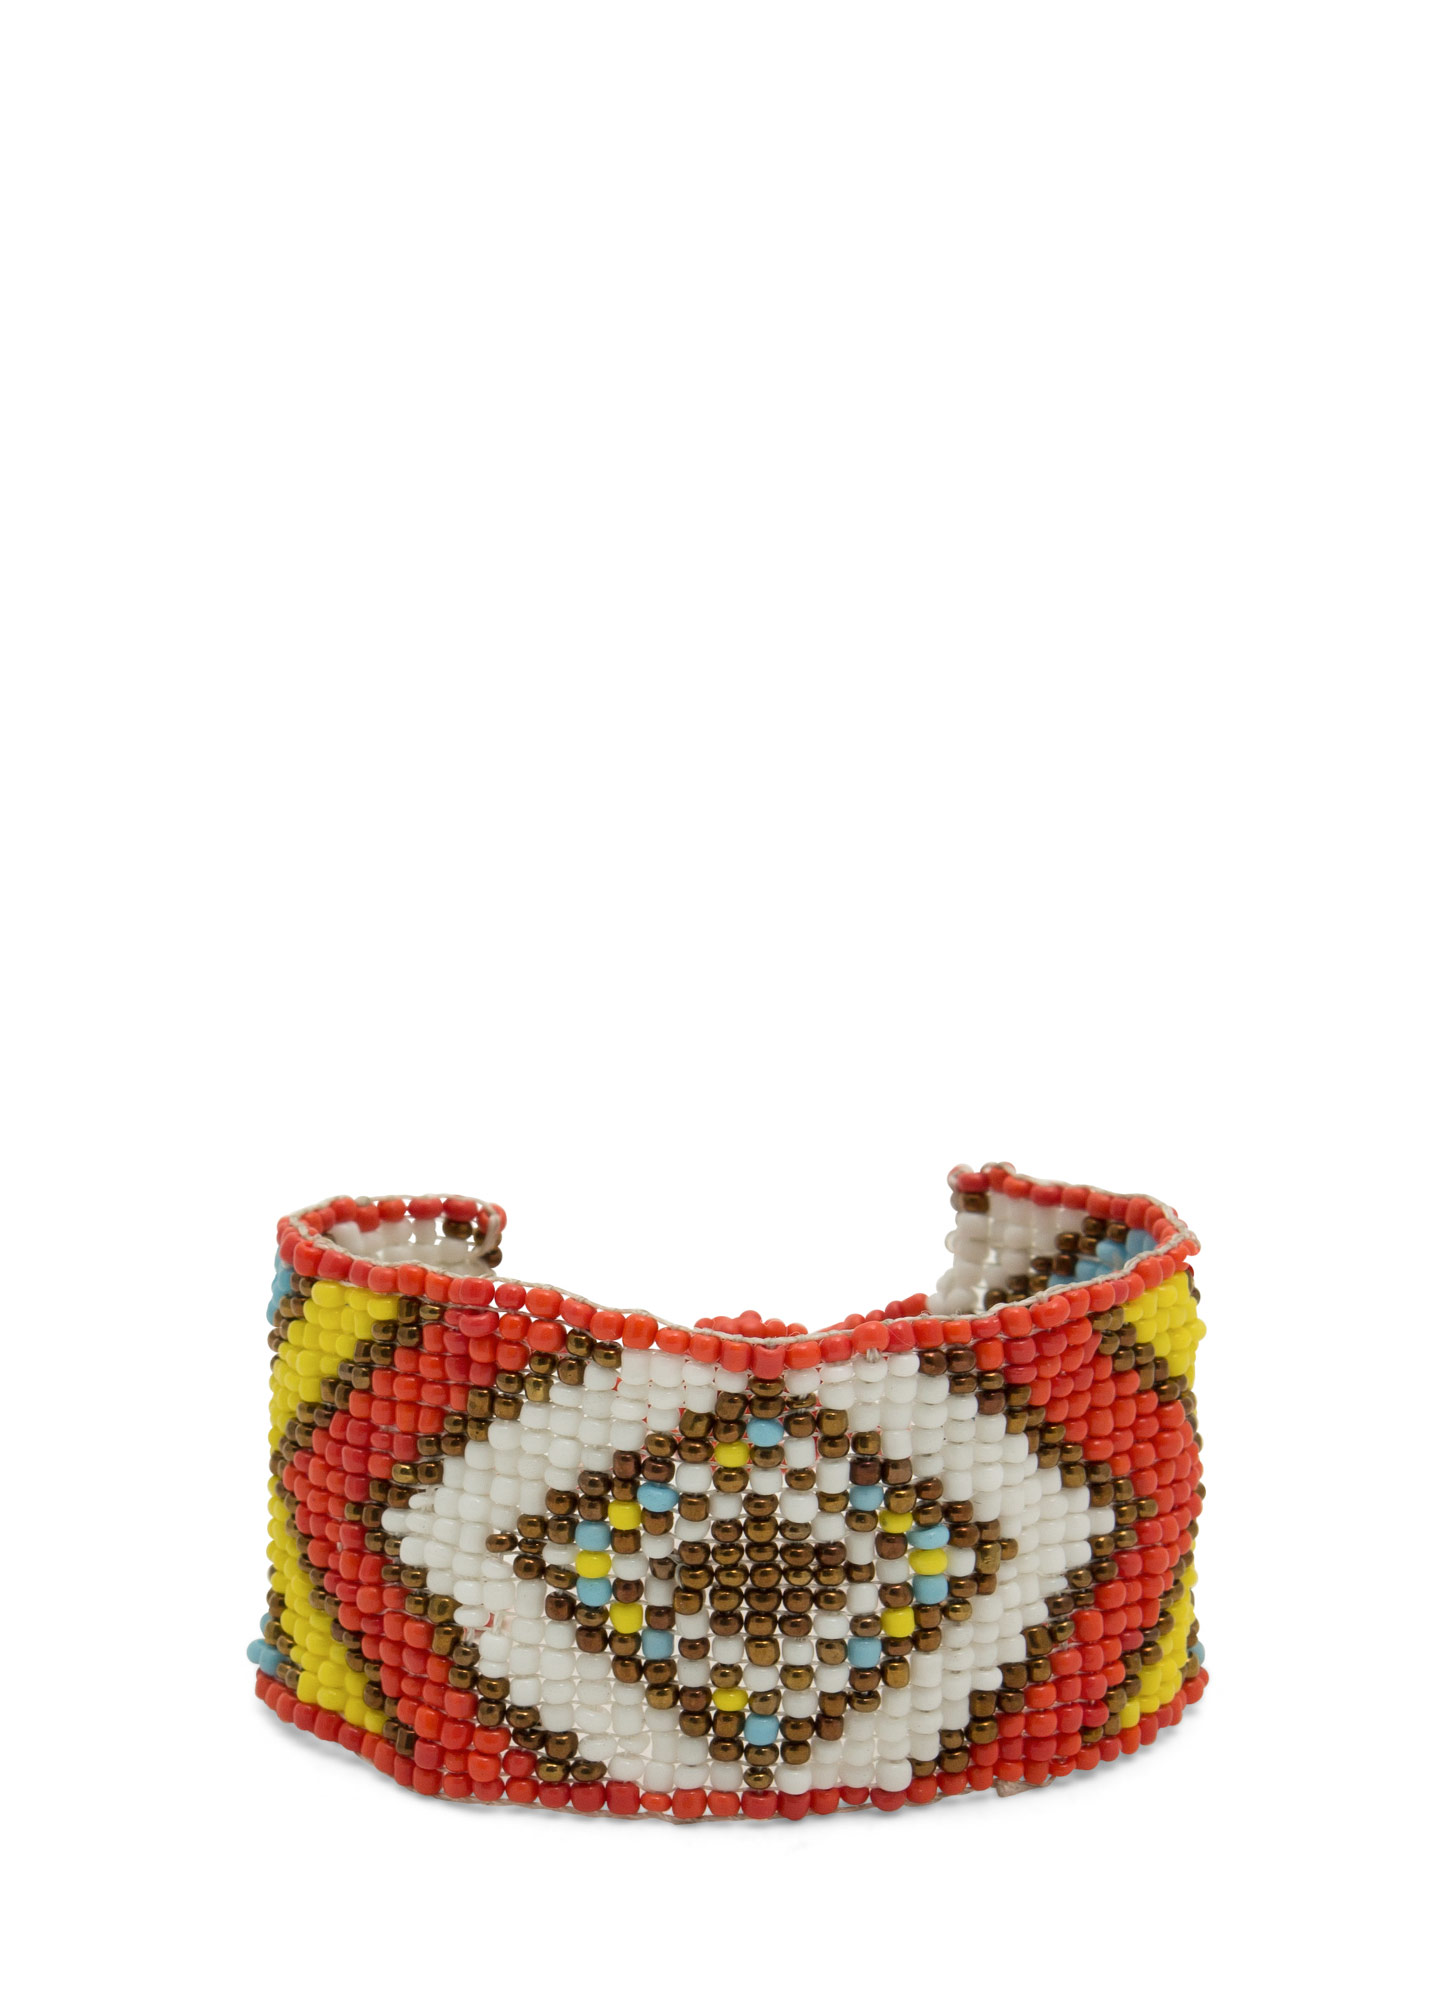 Beaded Tribal-Inspired Bracelet ORANGEMULT